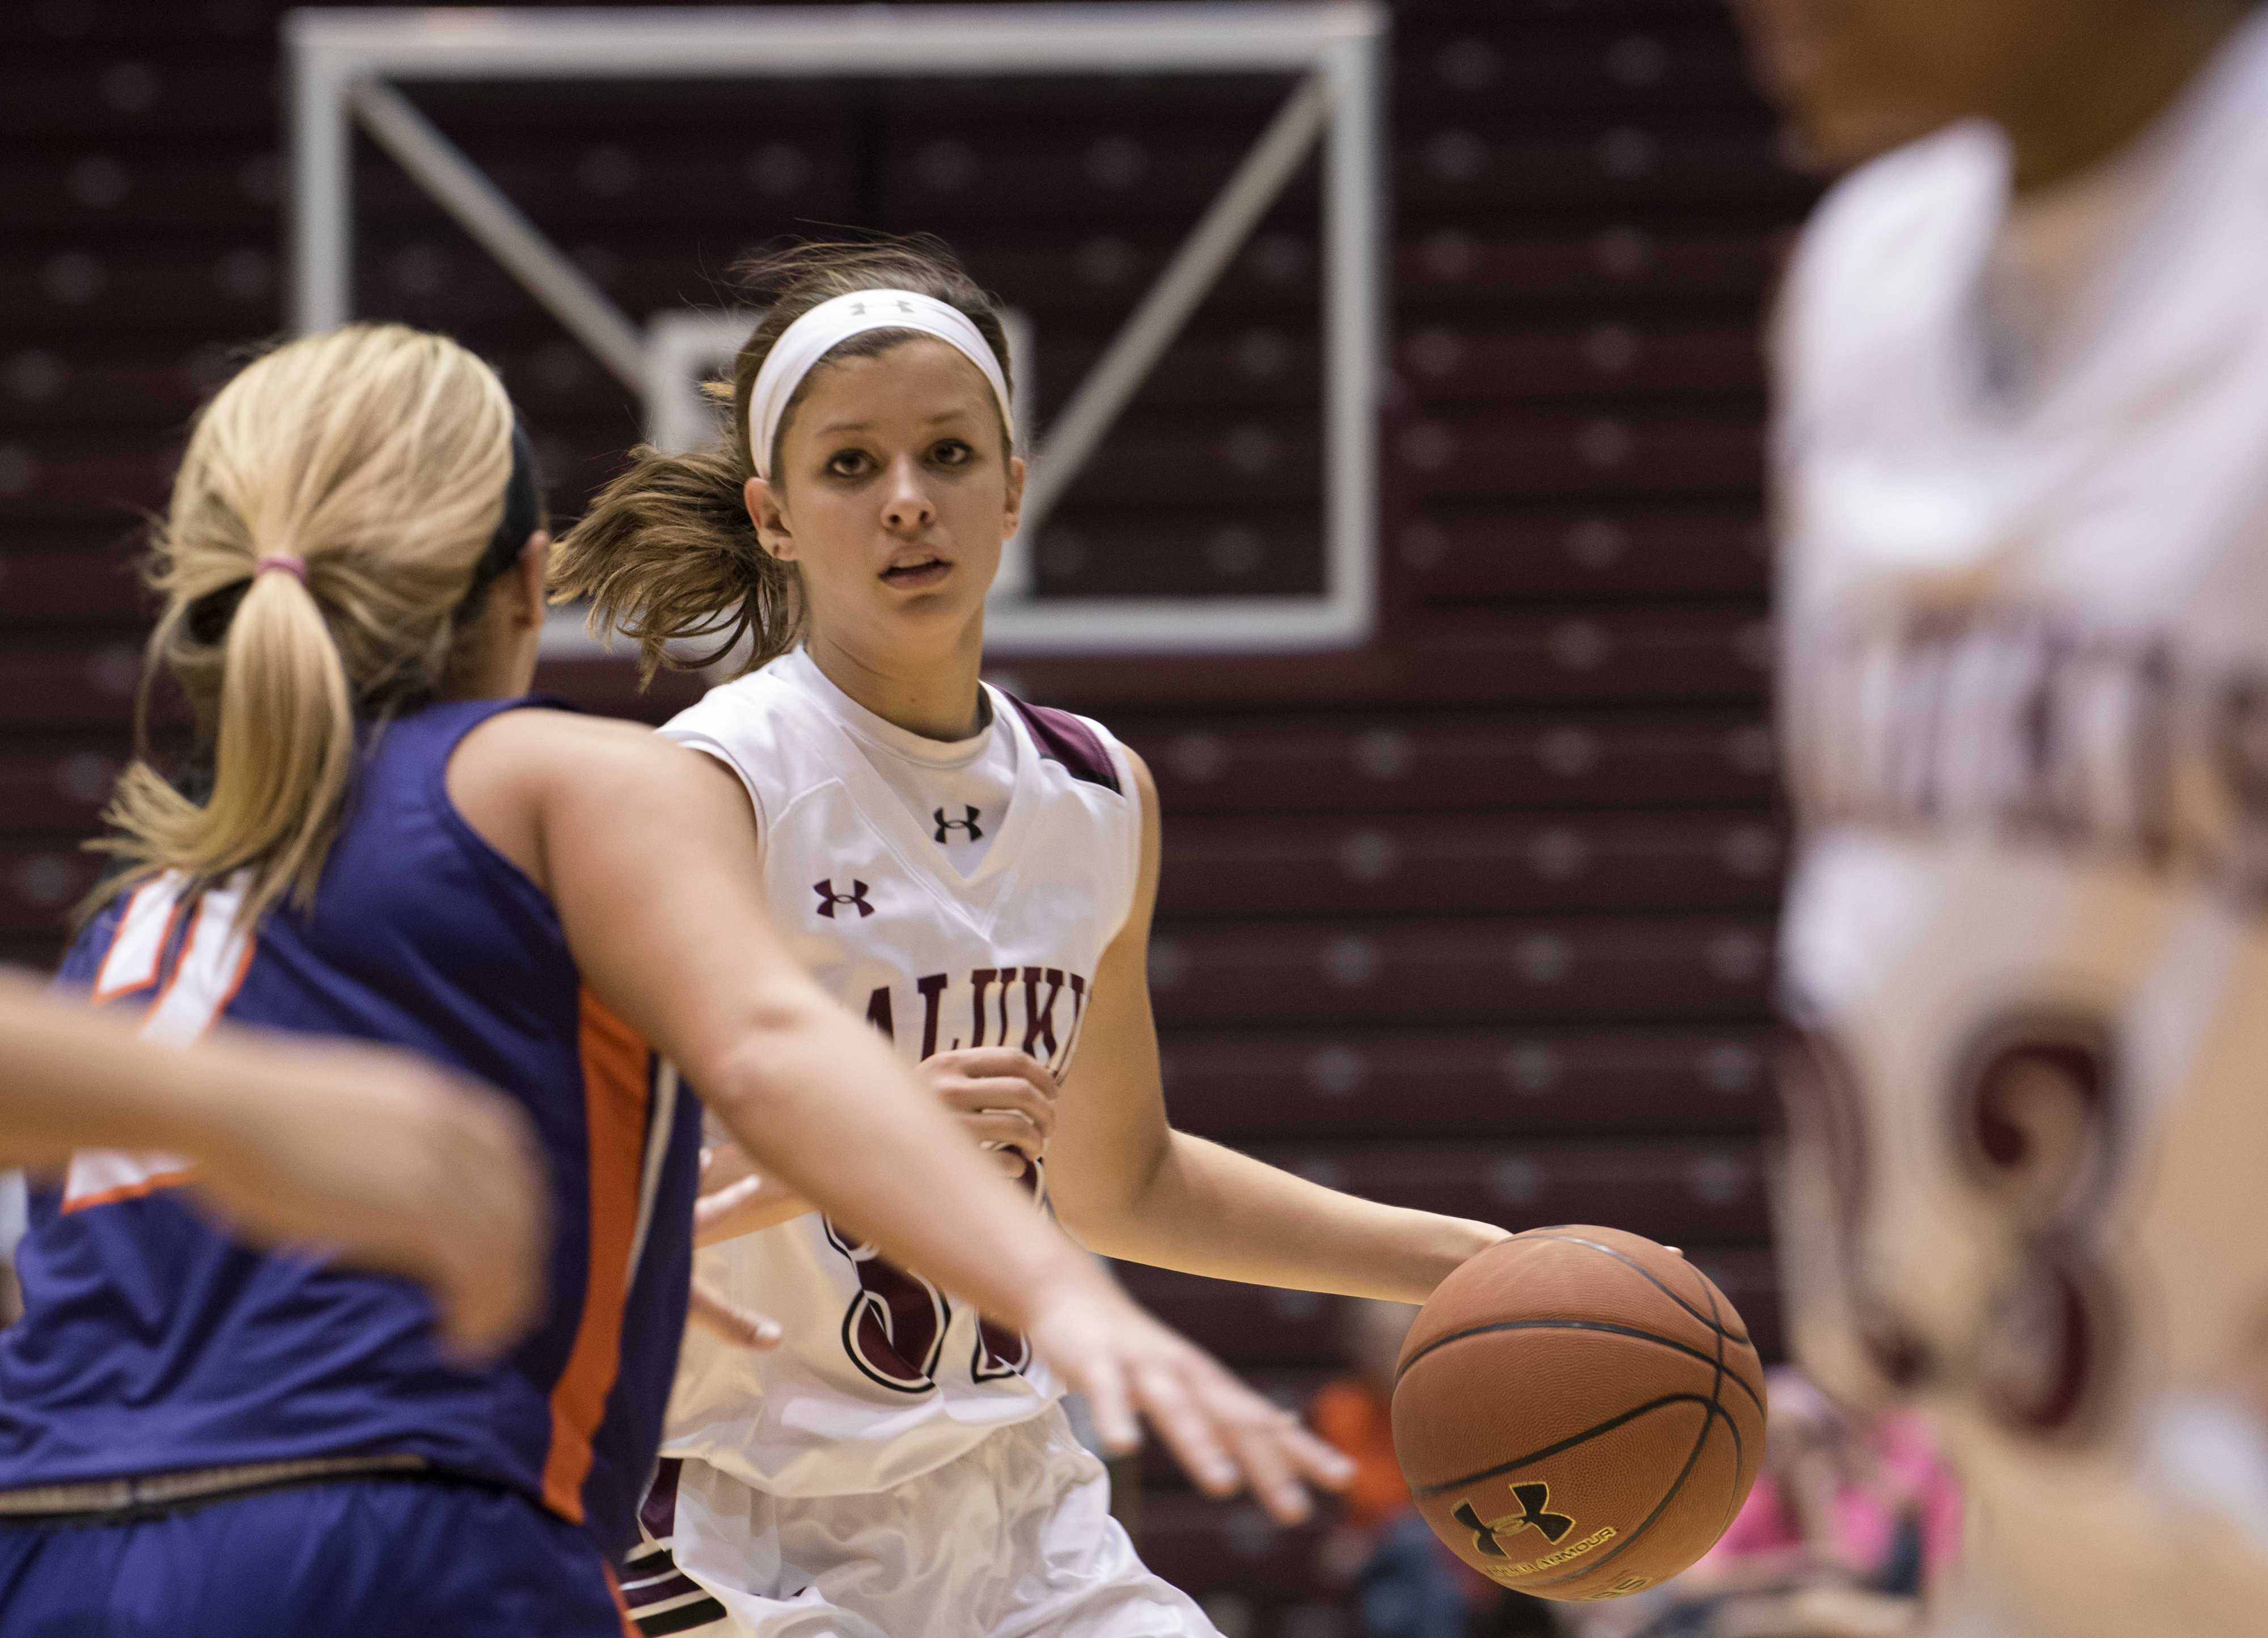 Junior guard Kylie Giebelhausen is guarded by Aces sophomore forward Kerri Gasper on Friday, Feb. 17, 2017, during a game against the Evansville Aces at SIU Arena. The Salukis lost to the Evansville Aces 74-61. (Bill Lukitsch | @lukitsbill)